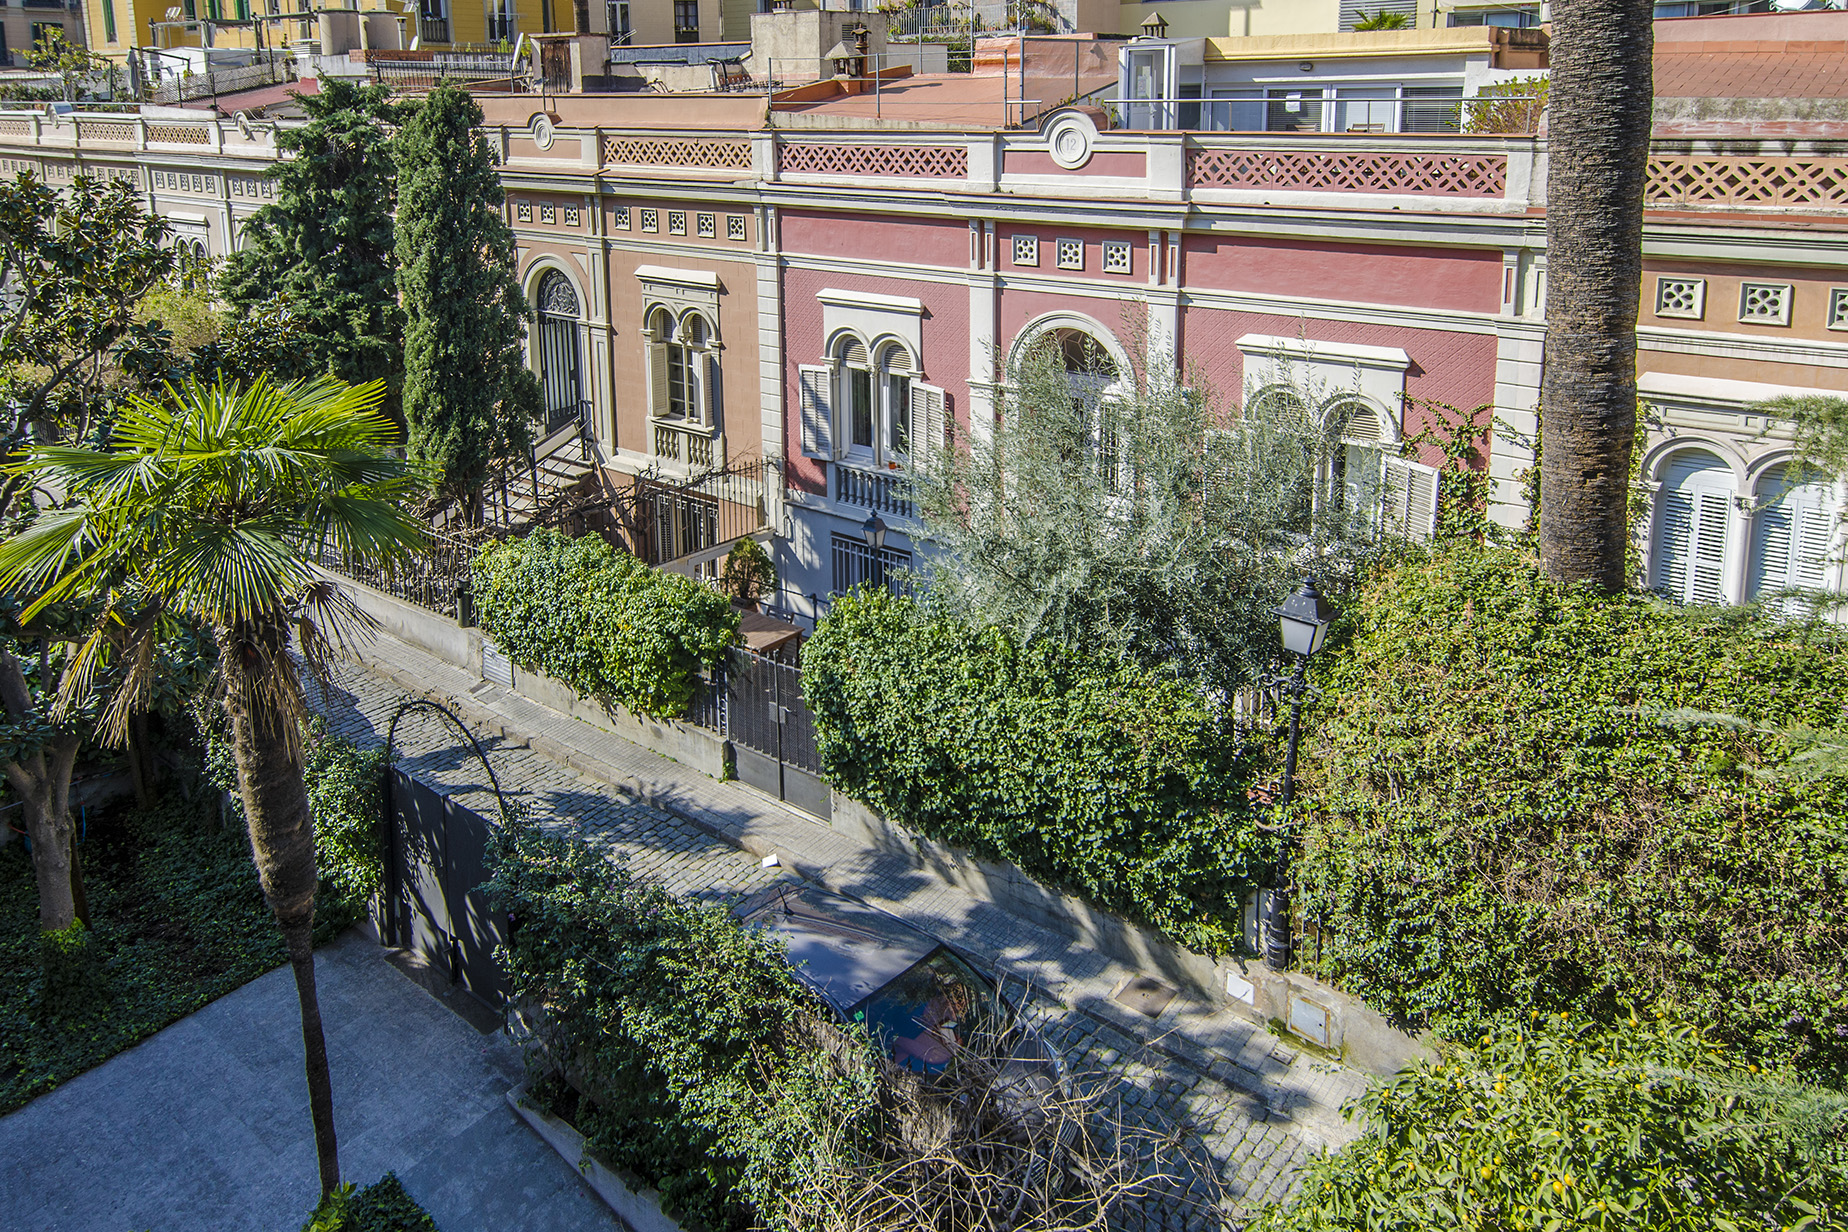 Single Family Home for Sale at Magnificent house with private garden in an exclusive passage in L'Eixample ... Eixample, Barcelona City, Barcelona, 08007 Spain